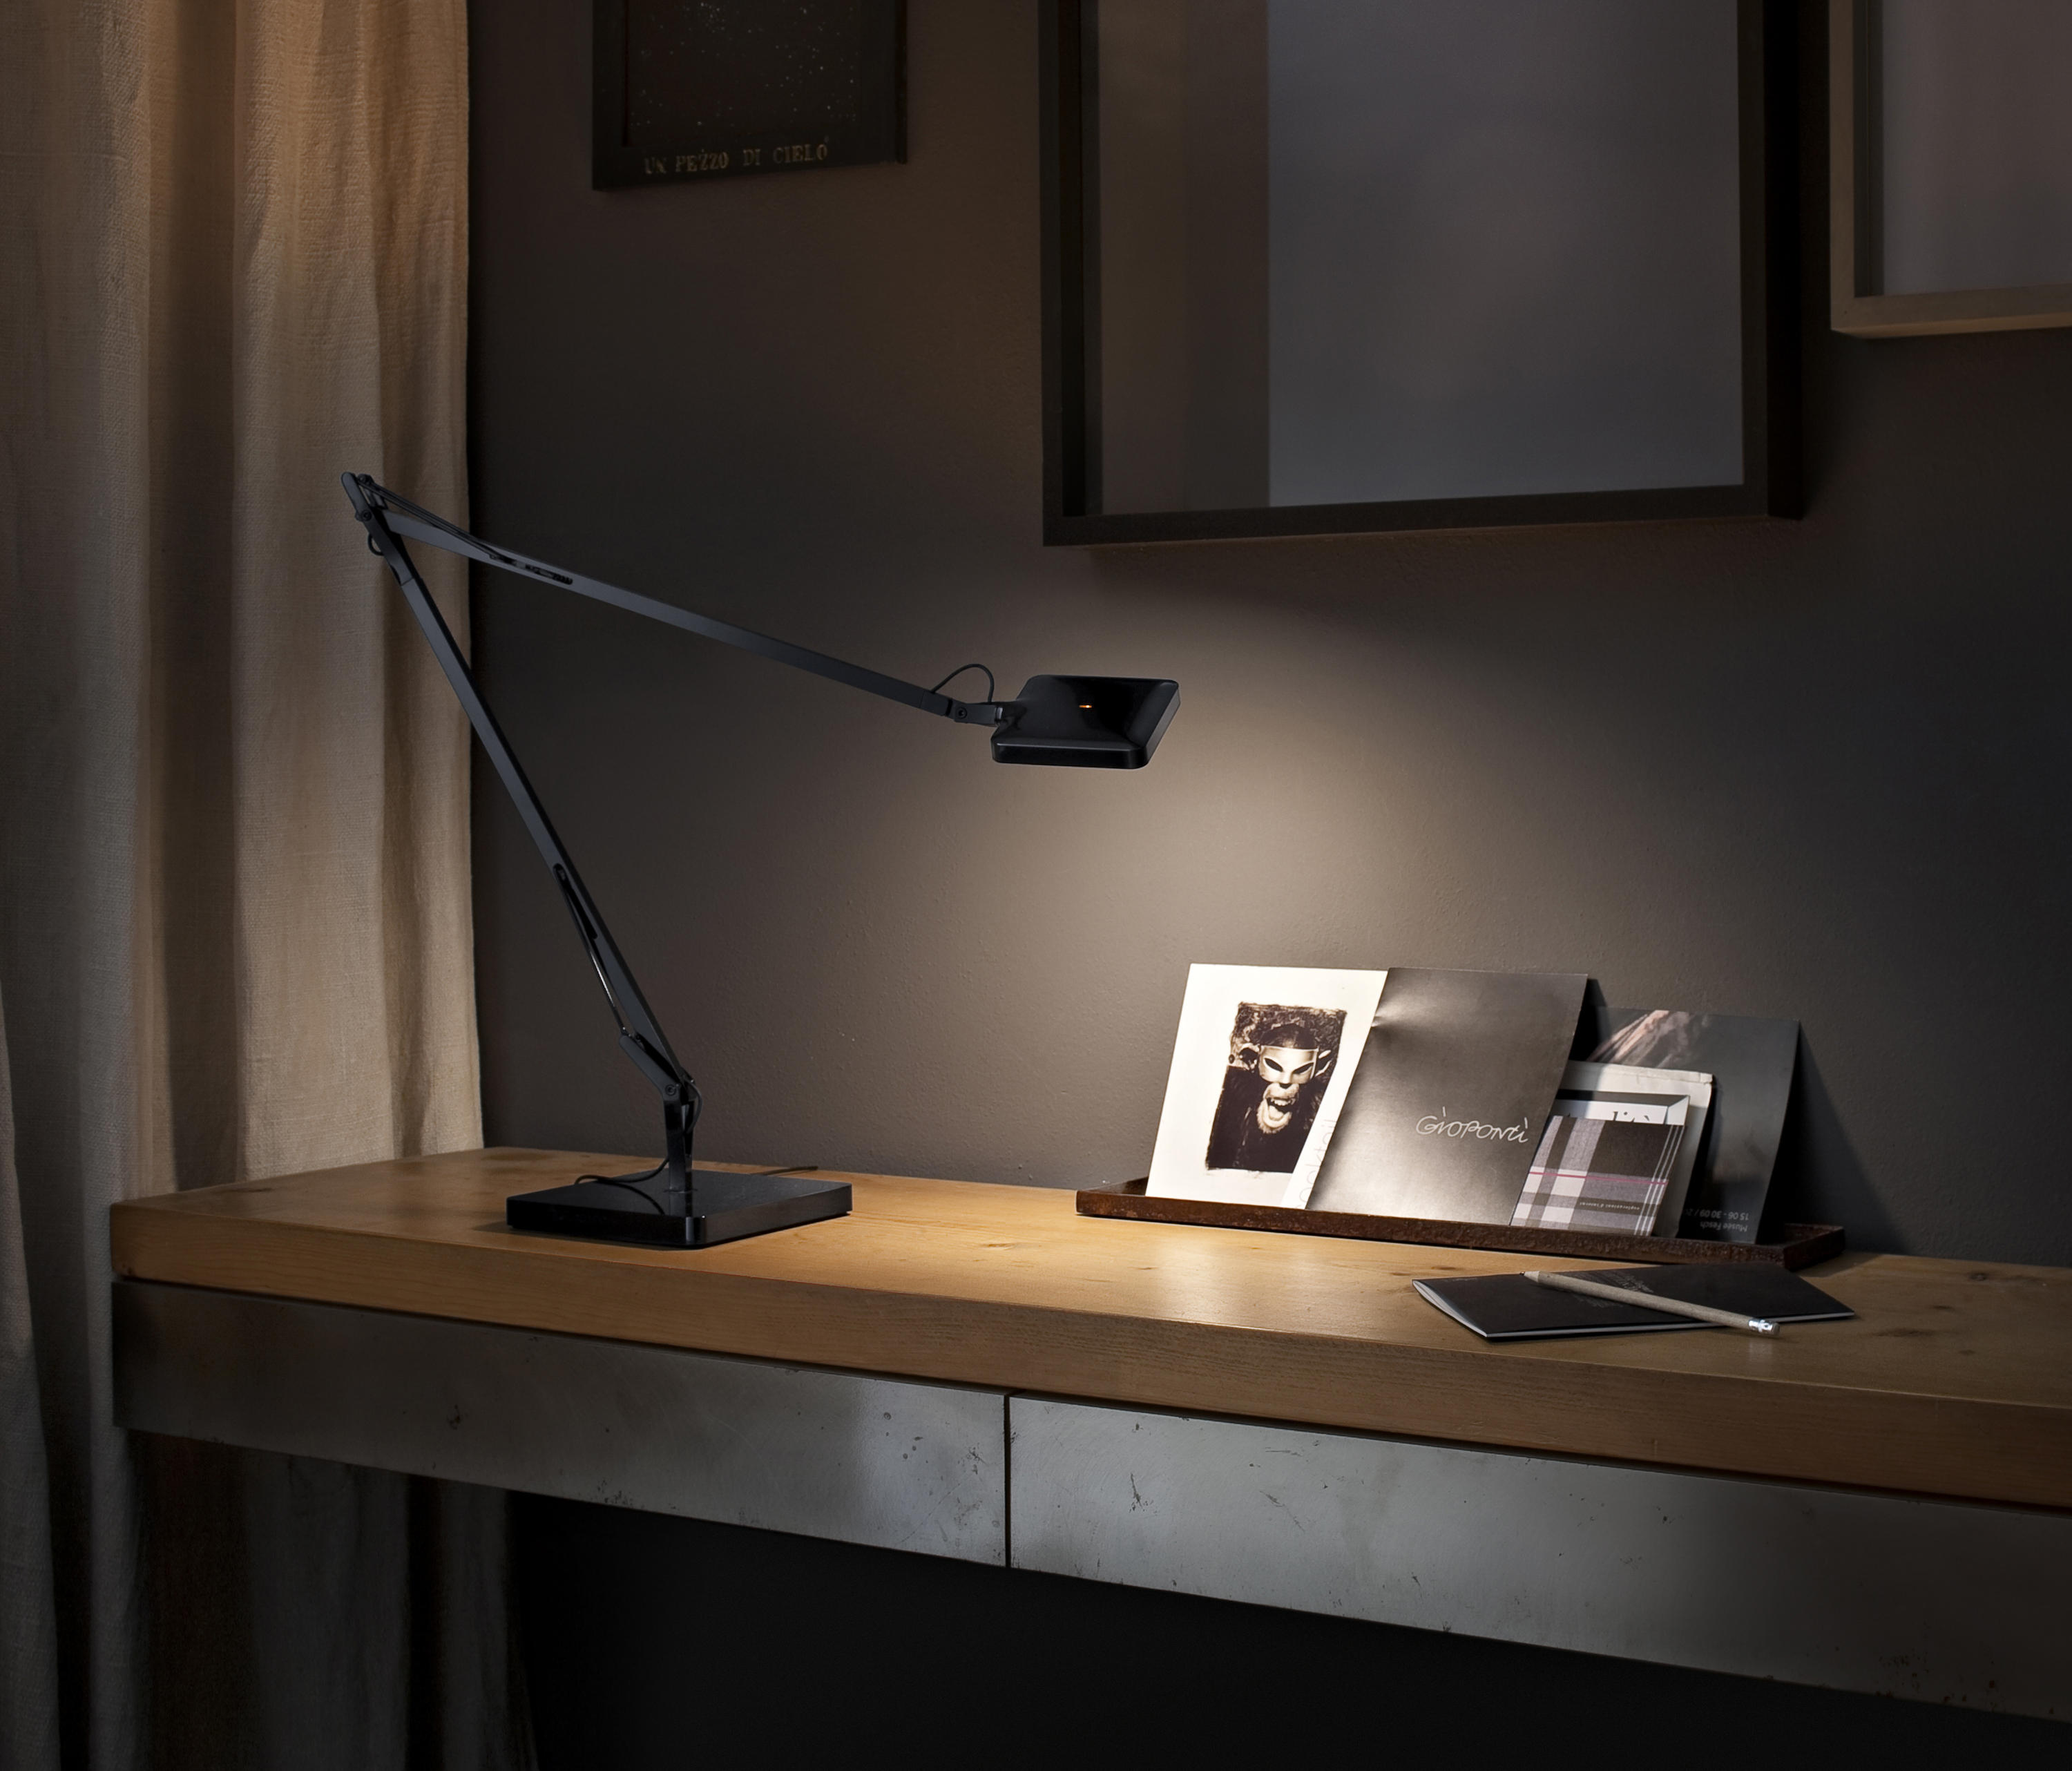 kelvin led base general lighting from flos architonic. Black Bedroom Furniture Sets. Home Design Ideas